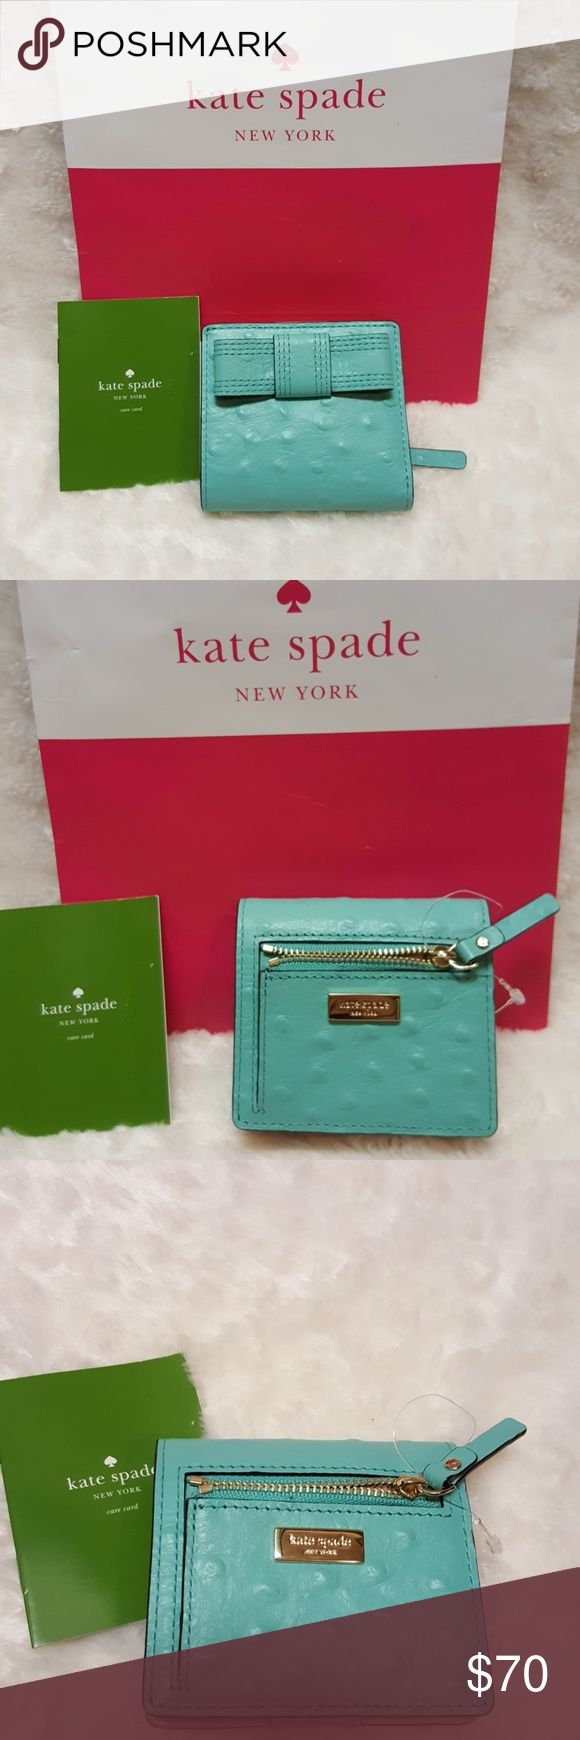 """KATE SPADE SERANADE VALENCIA ROAD WALLET Wallet Features:  LEATHER KATE SPADE BOW ON EXTERIORKANE-M SNAP ENCLOSURE 3 Leather Credit Card Slots1 Bill-Length Slide Pocket Inside1 ID Pouch with an Additional Card Slot Below ItZipped Change Pocket on Exterior with Leather Zipper PullSignature Logo Plaque on Top Exterior FrontGold Plated HardwareLined in Signature Tan Sateen and Soft Camel Glove Leather""""fresh air"""" Color -which is a Pretty Turqoise Blue?Approx. Measurements - 4"""" (W) X 3 1/2"""" (H) X…"""